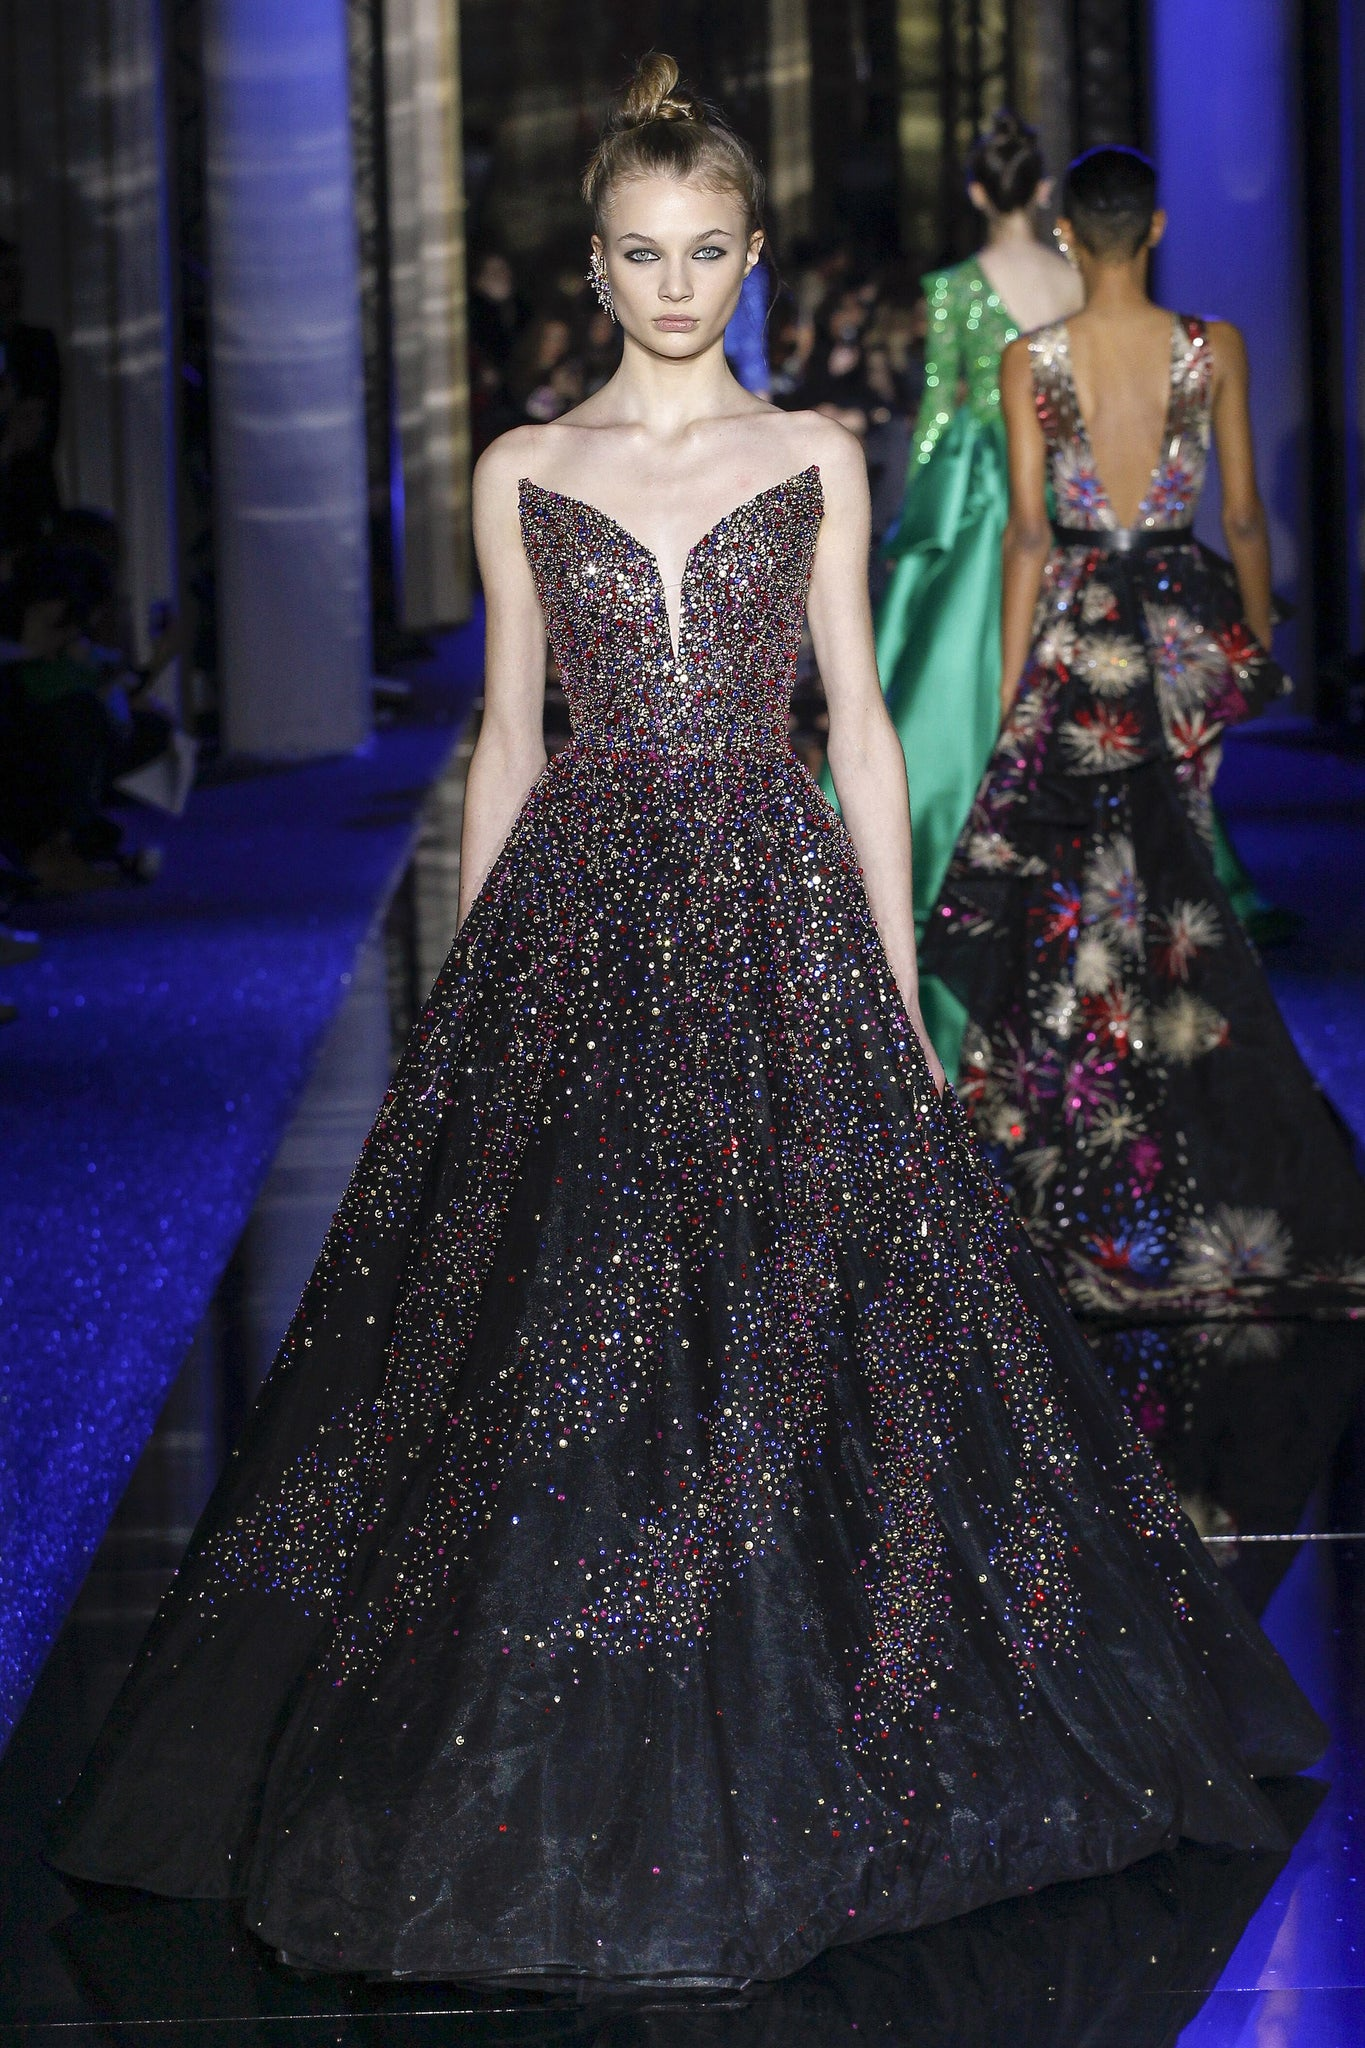 Designer Black Gown by Zuhair Murad